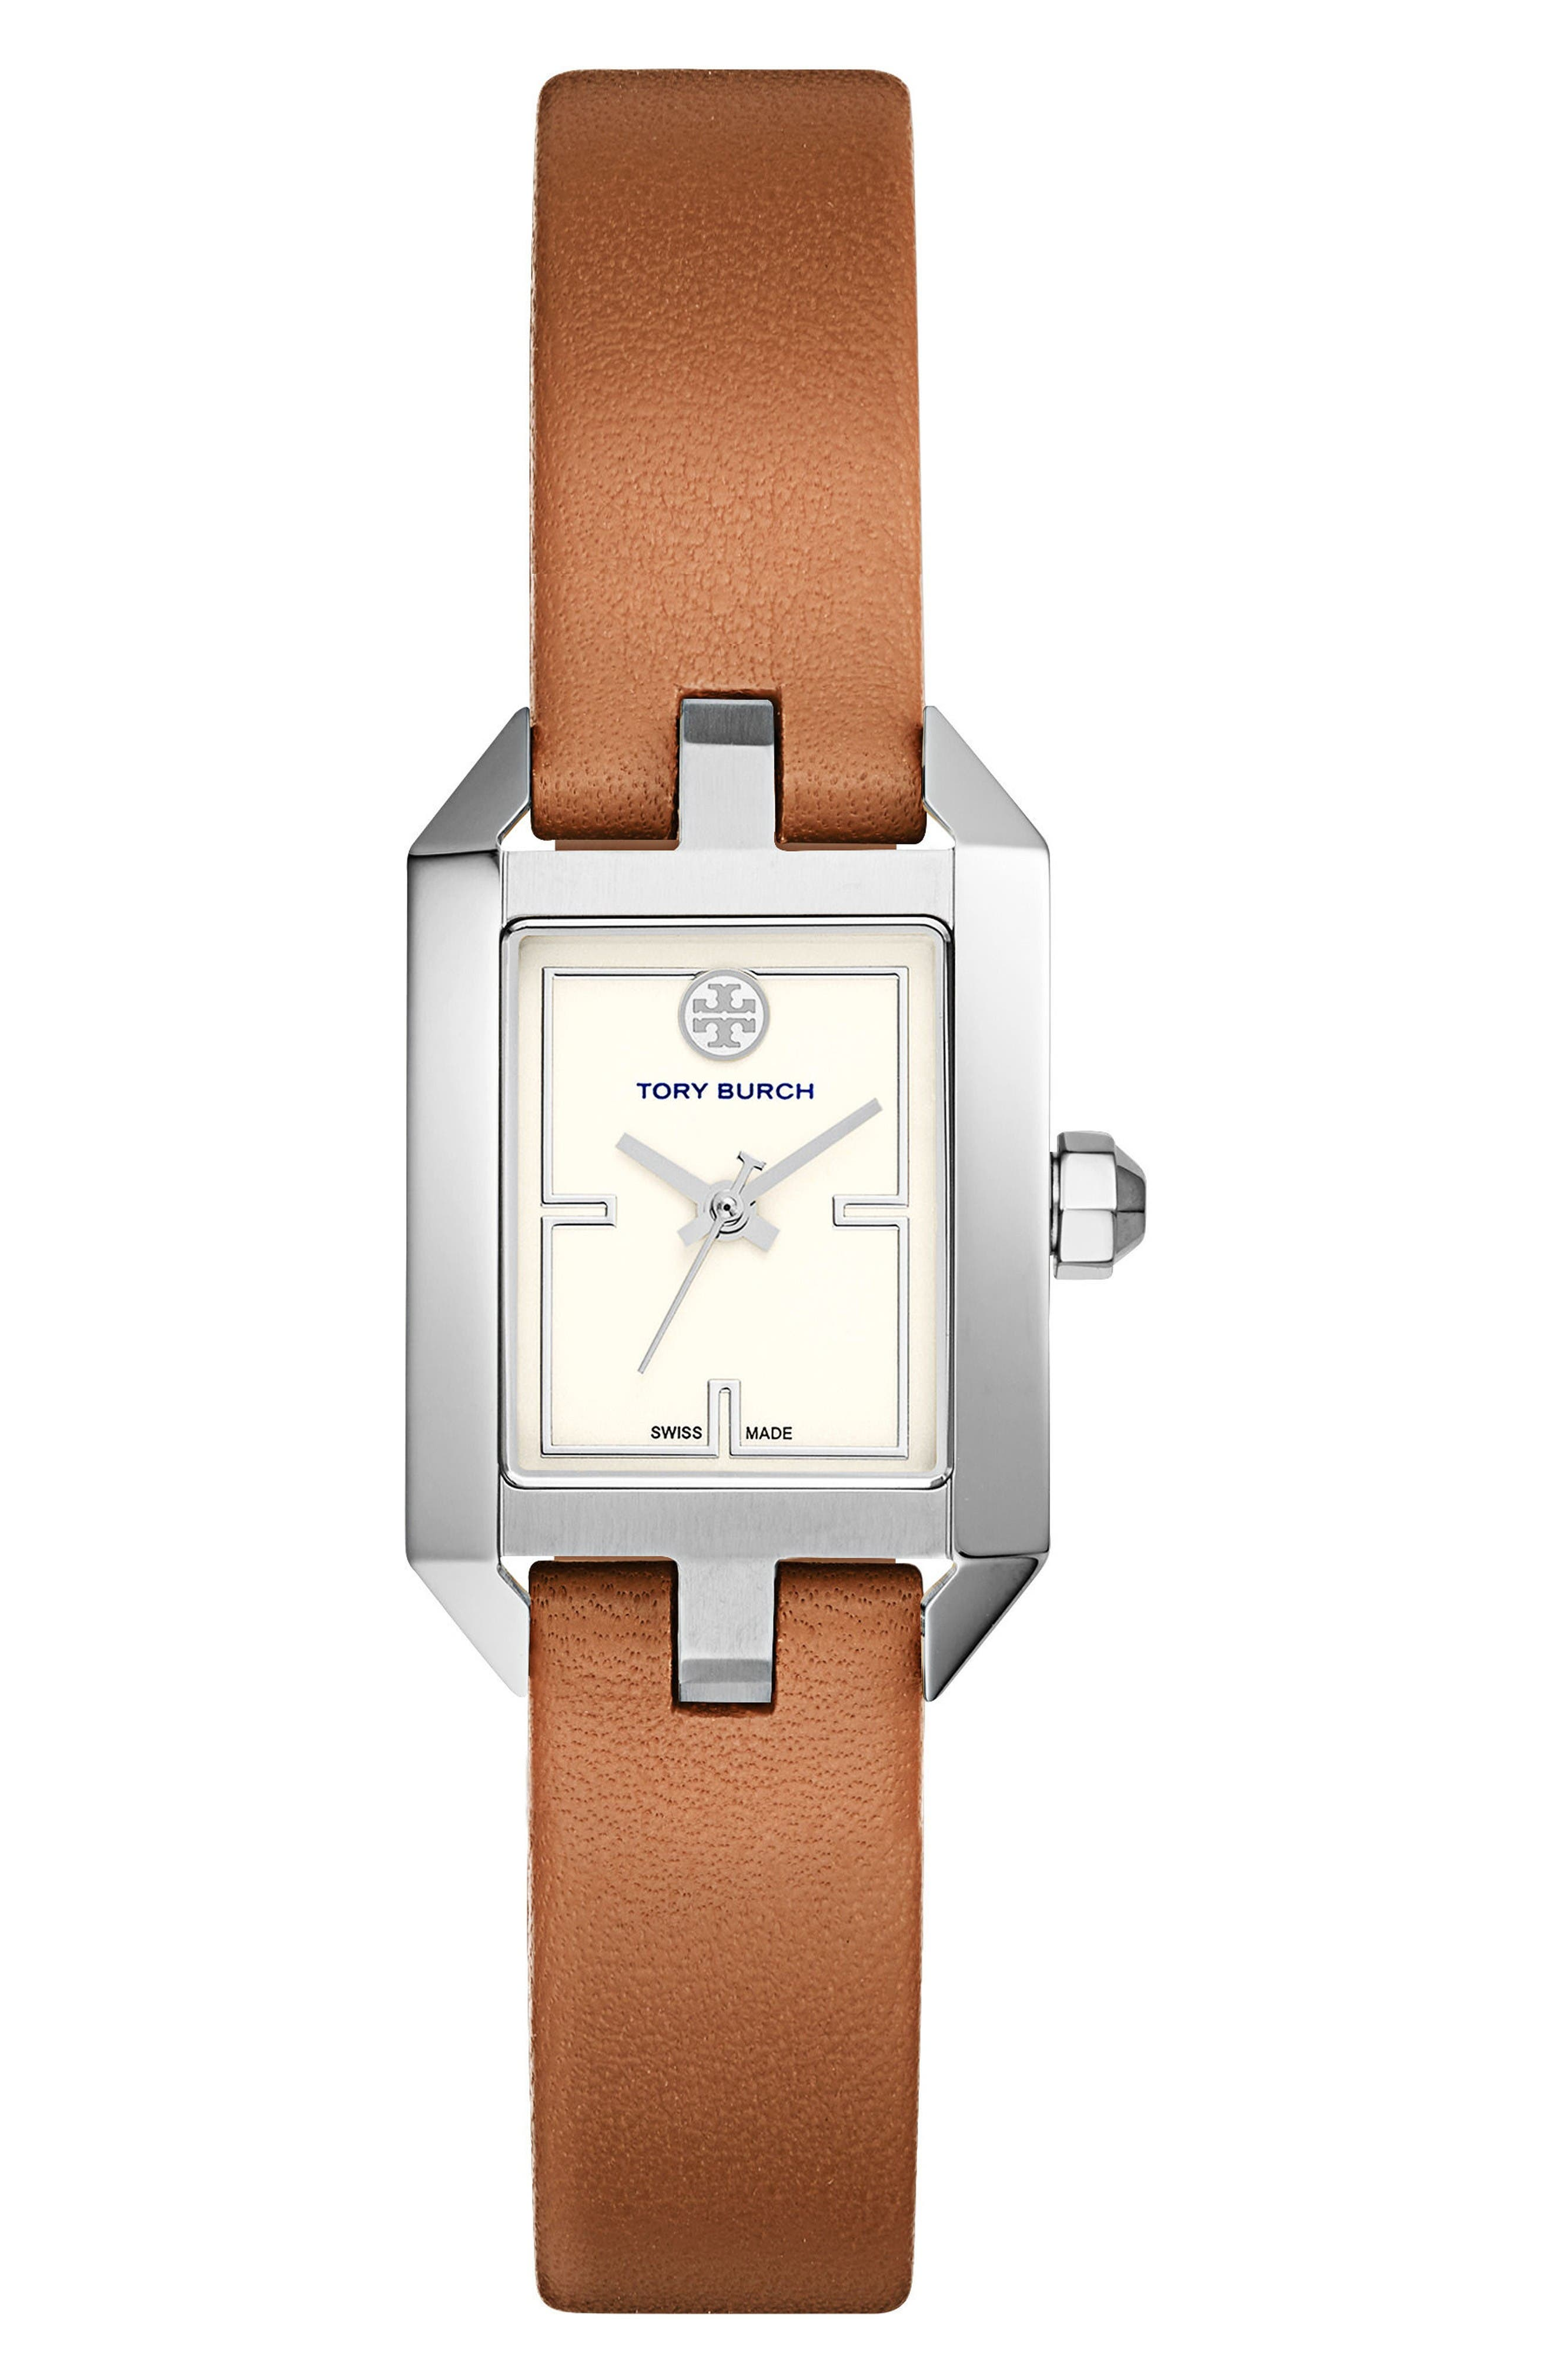 Tory Burch Dalloway Leather Strap Watch, 21mm x 24mm